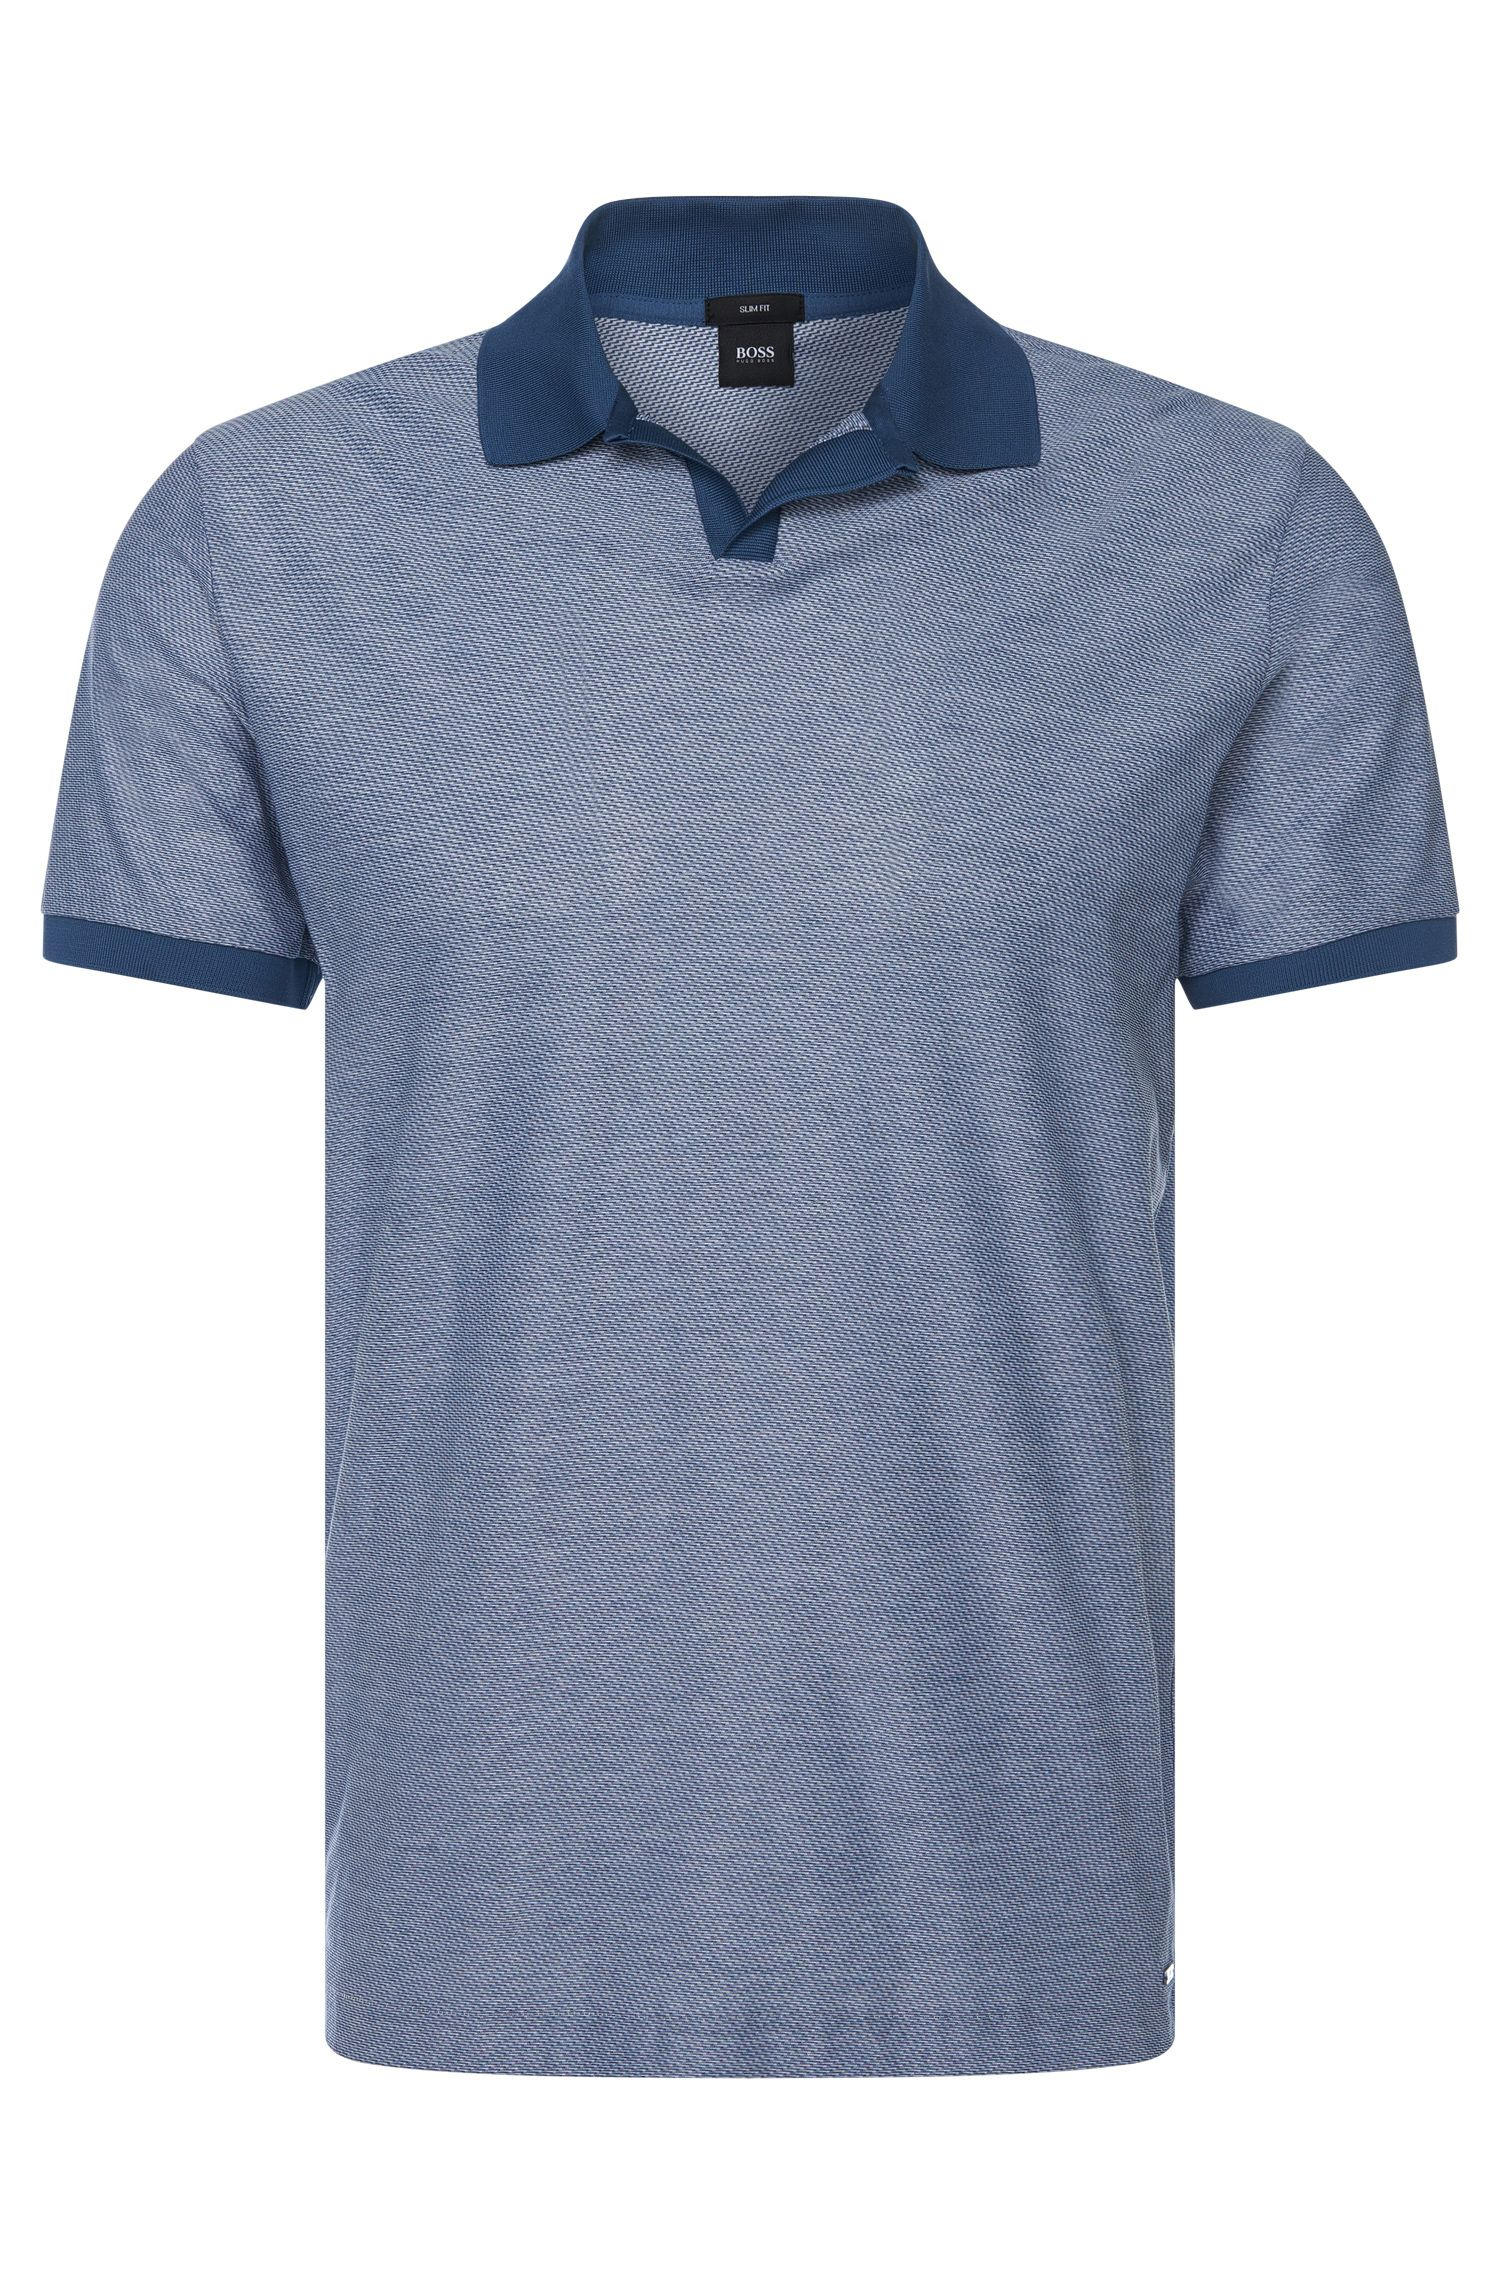 Cotton Patterned Polo Shirt, Slim Fit | Phillipson